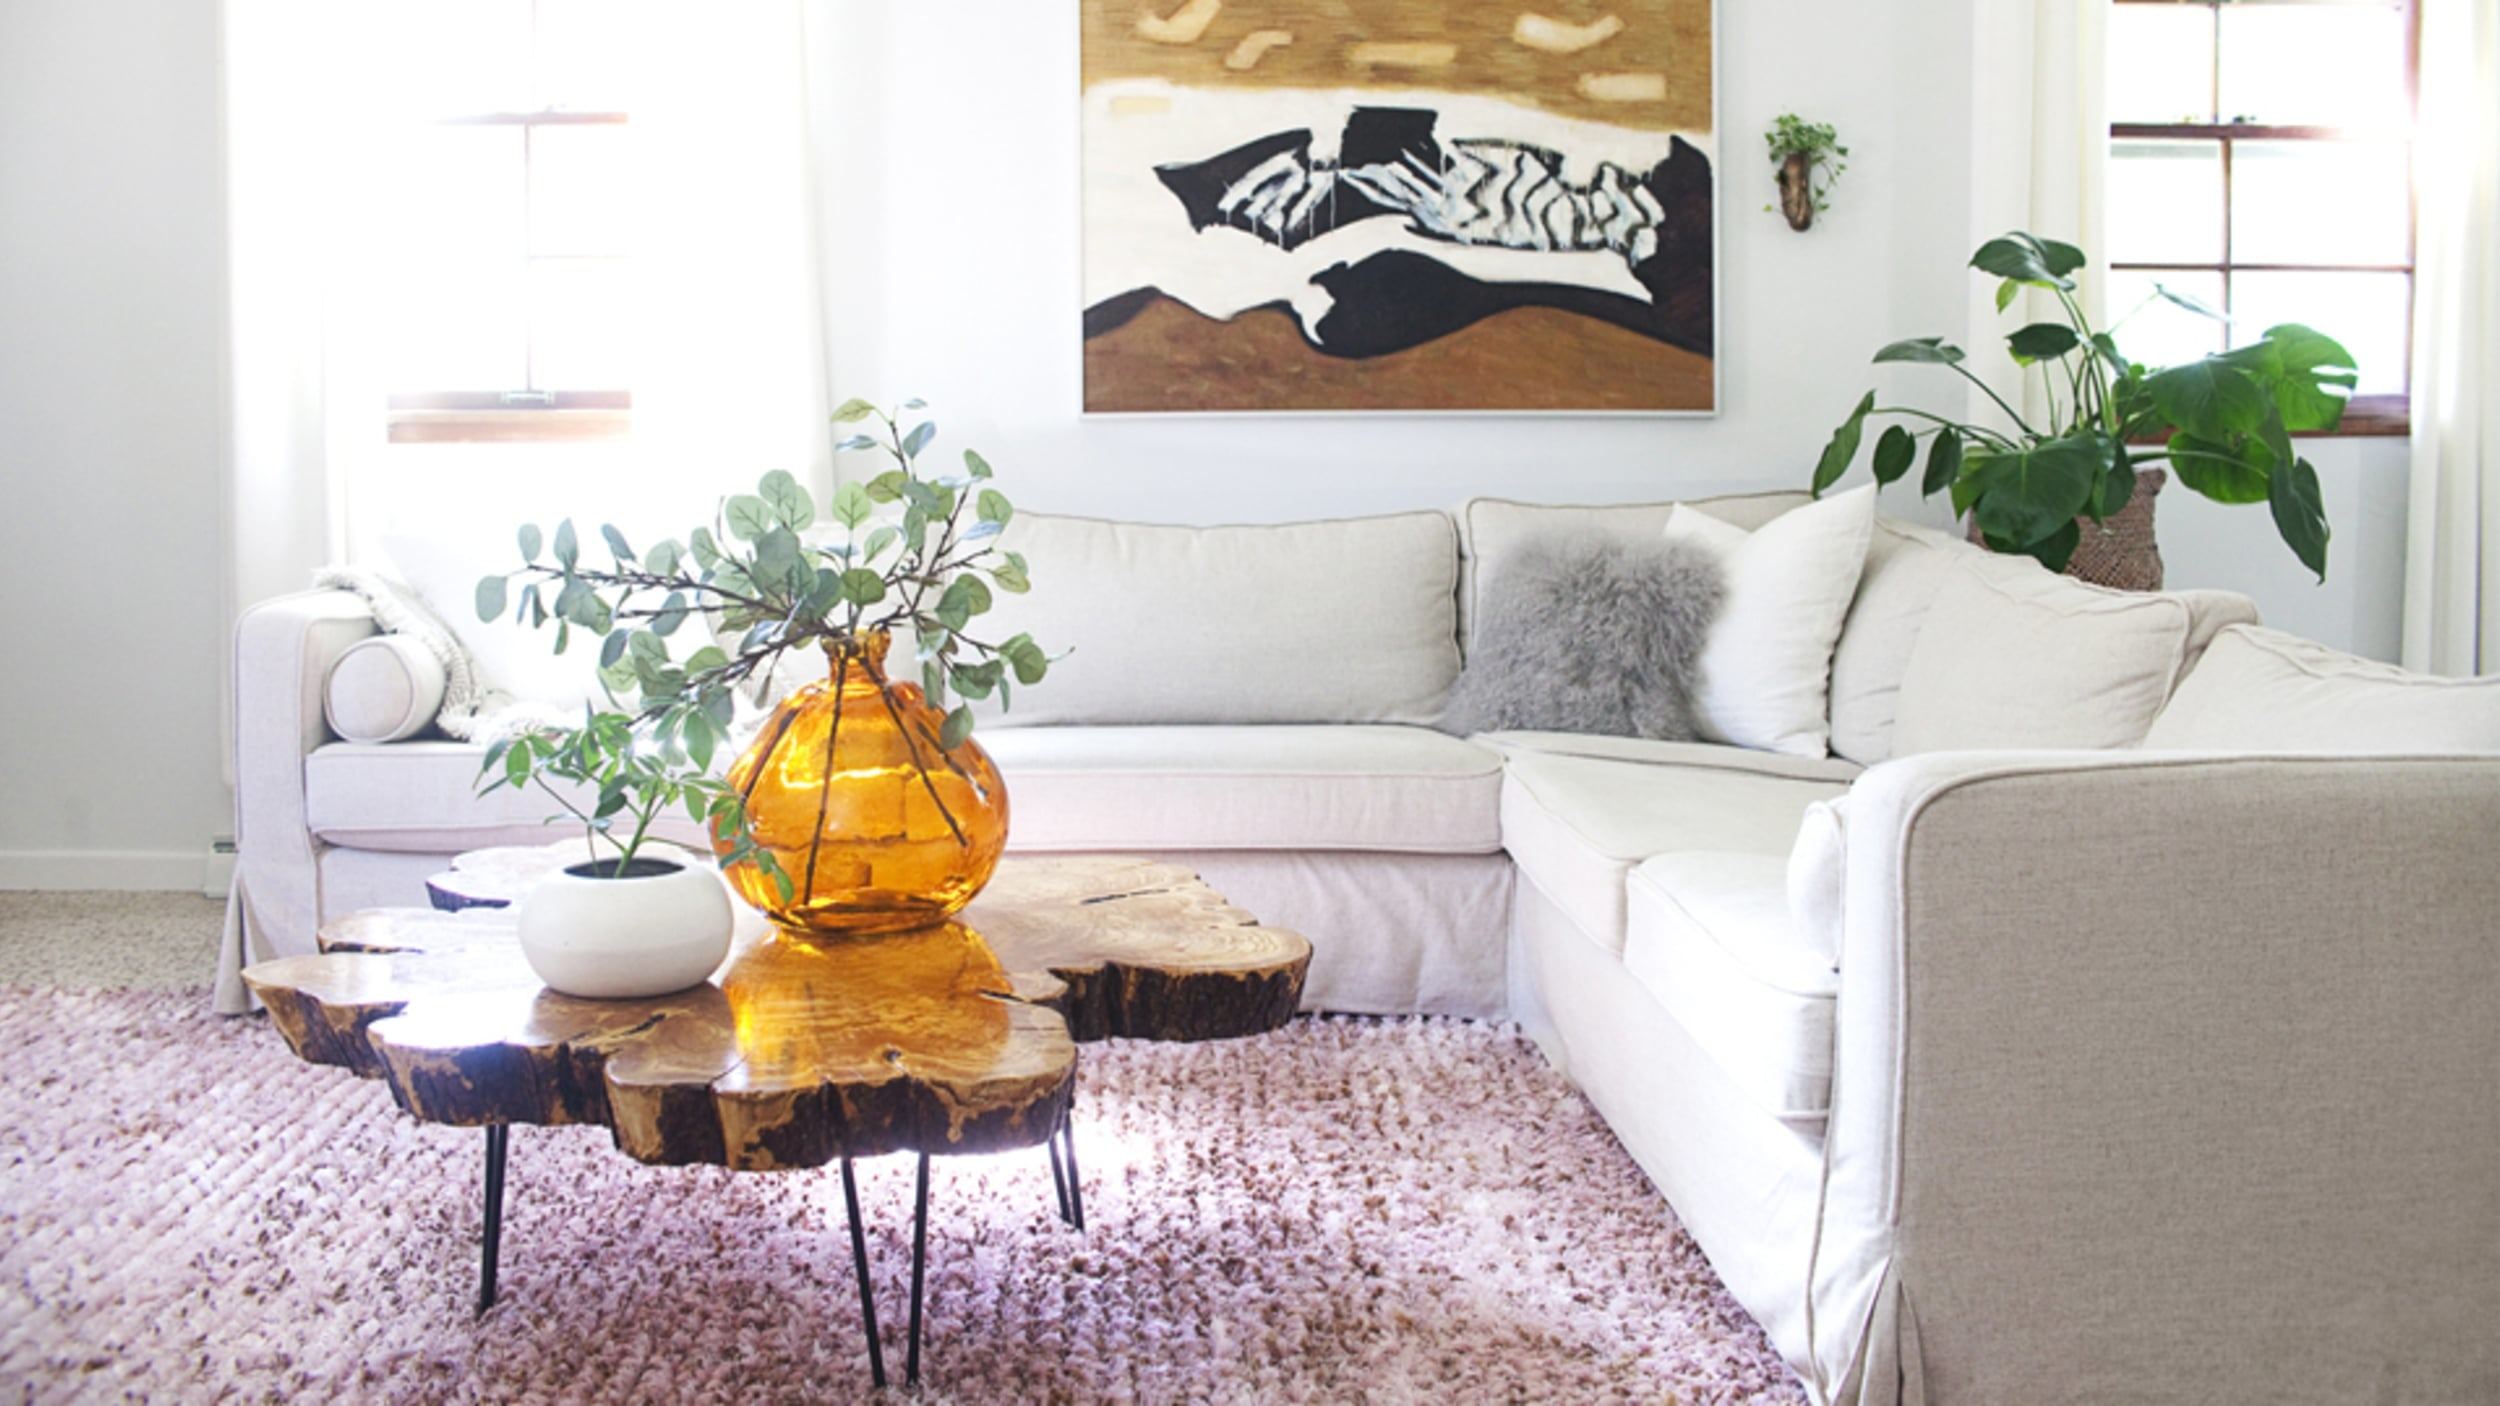 12 Ikea Hacks That Belong In Your Living Room – SheKnows